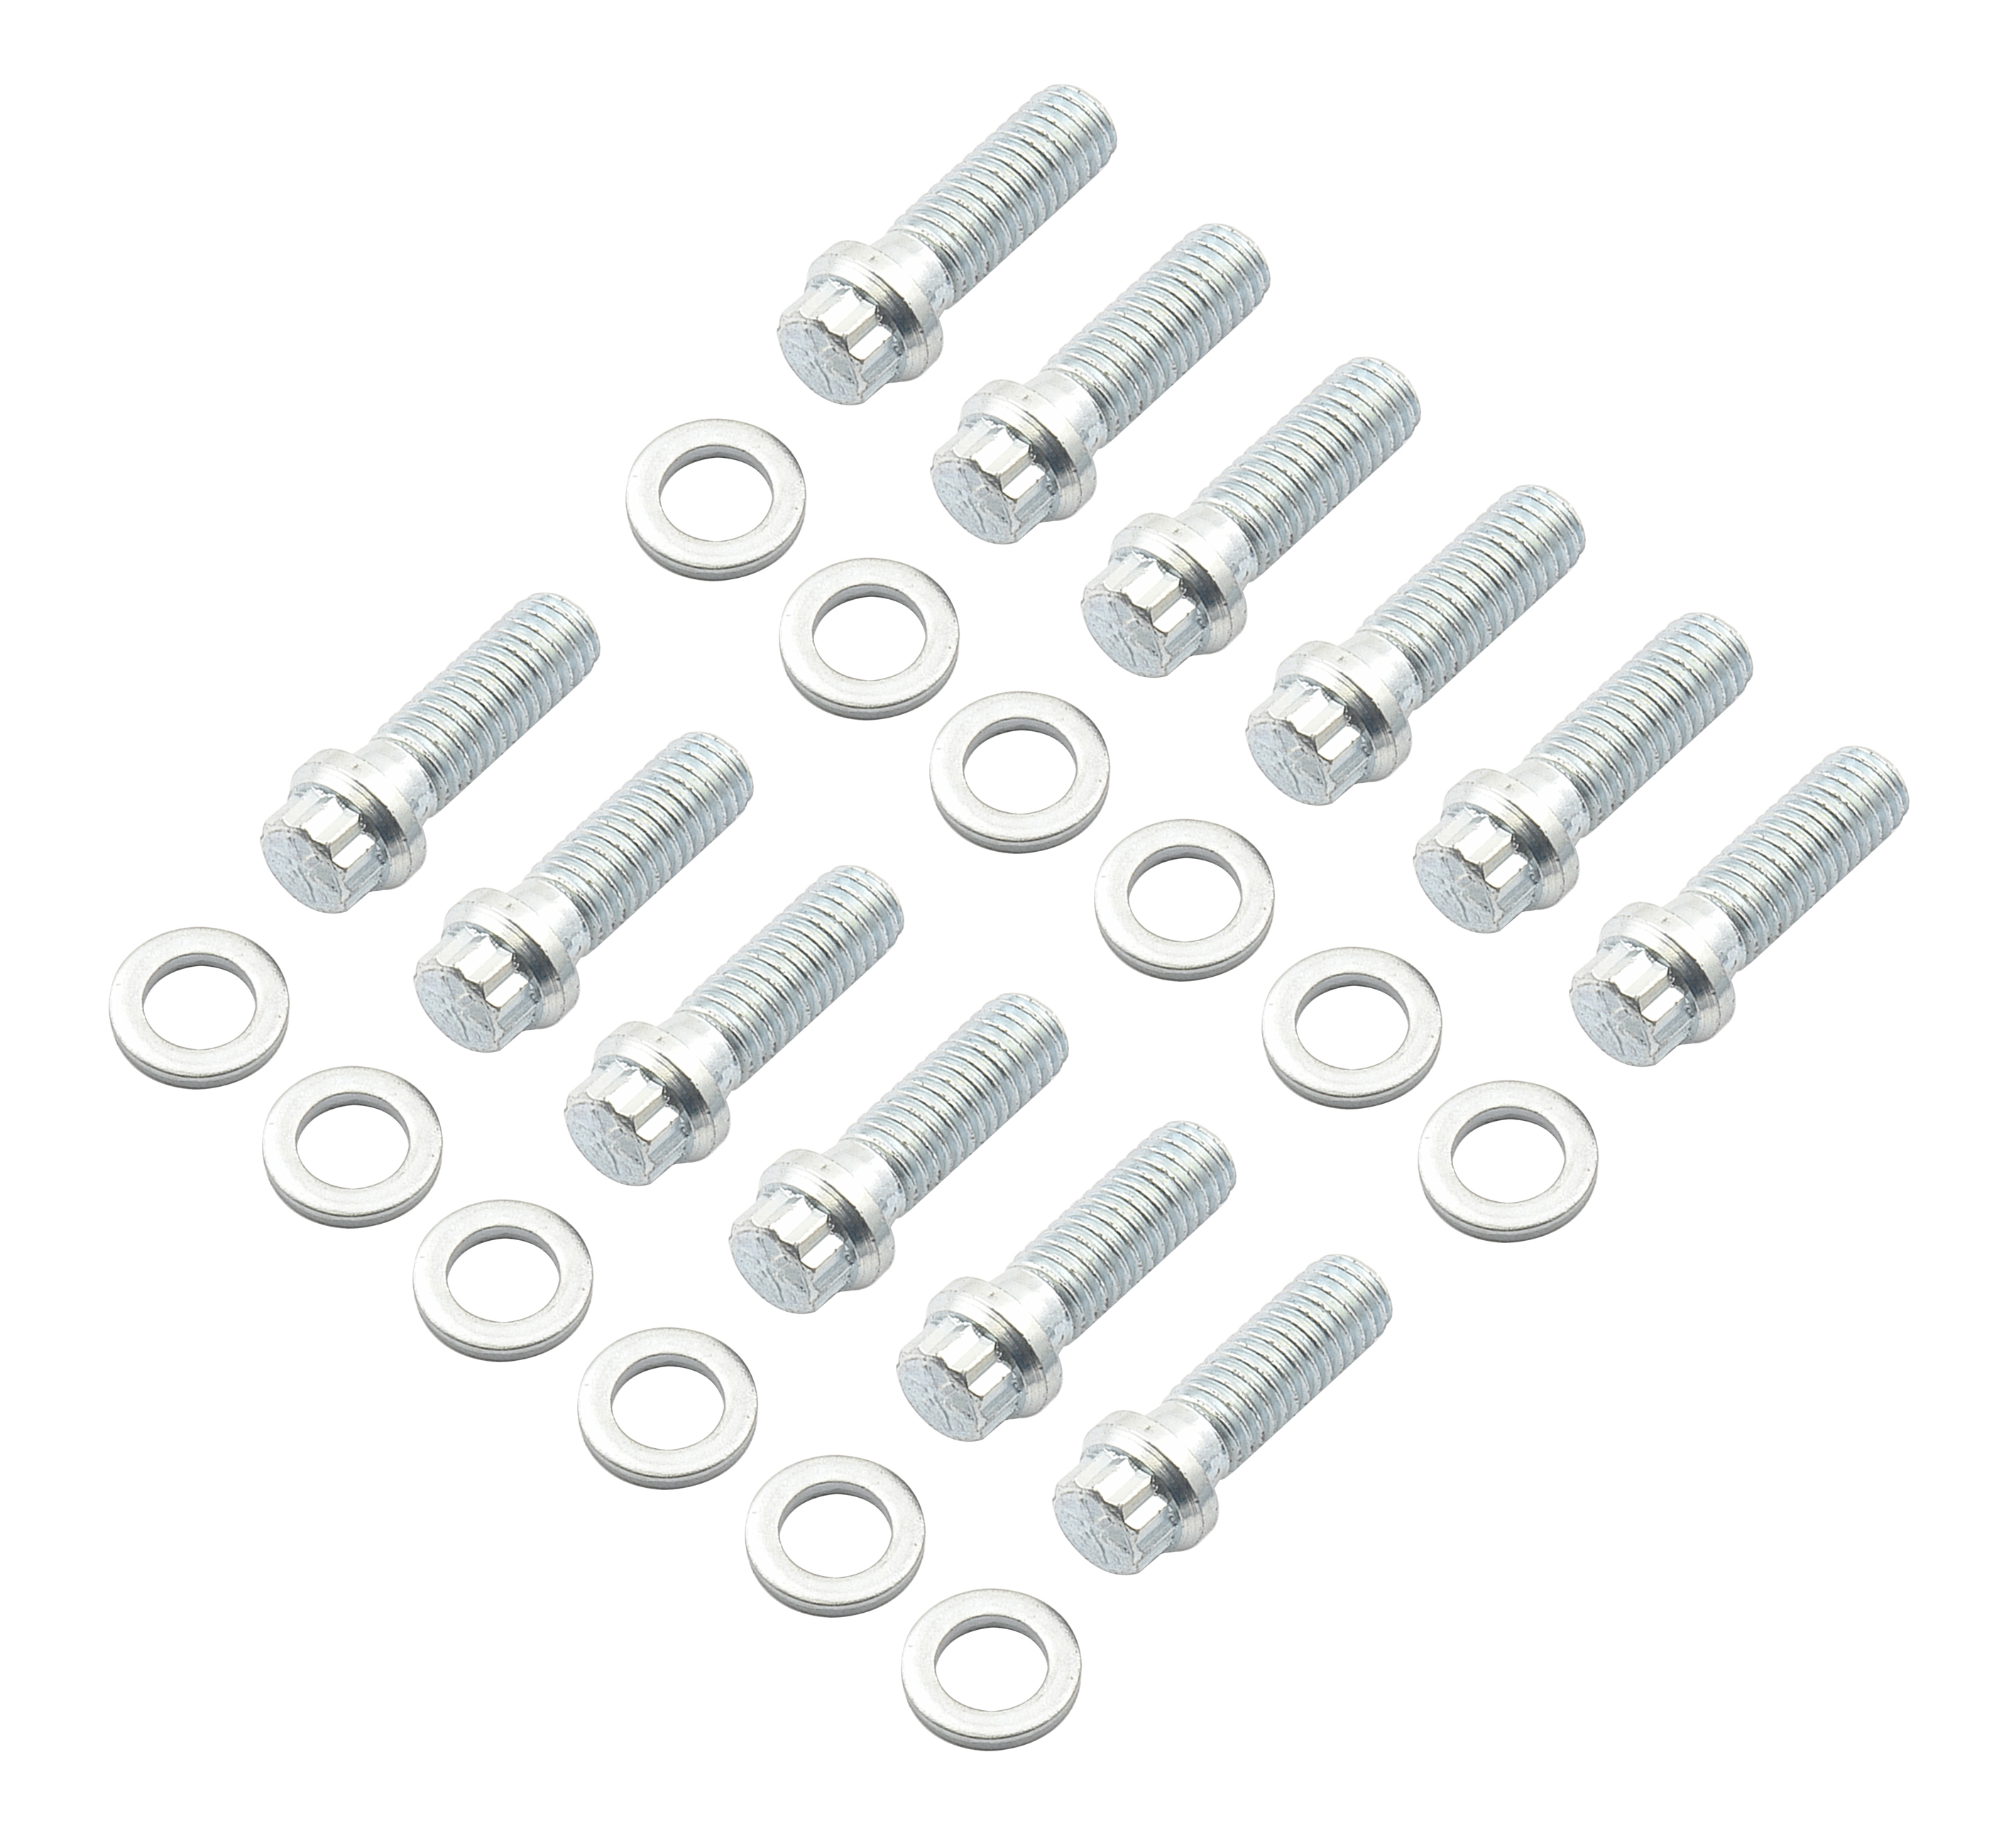 Mr Gasket Intake Manifold Bolts 12 Point Small Head